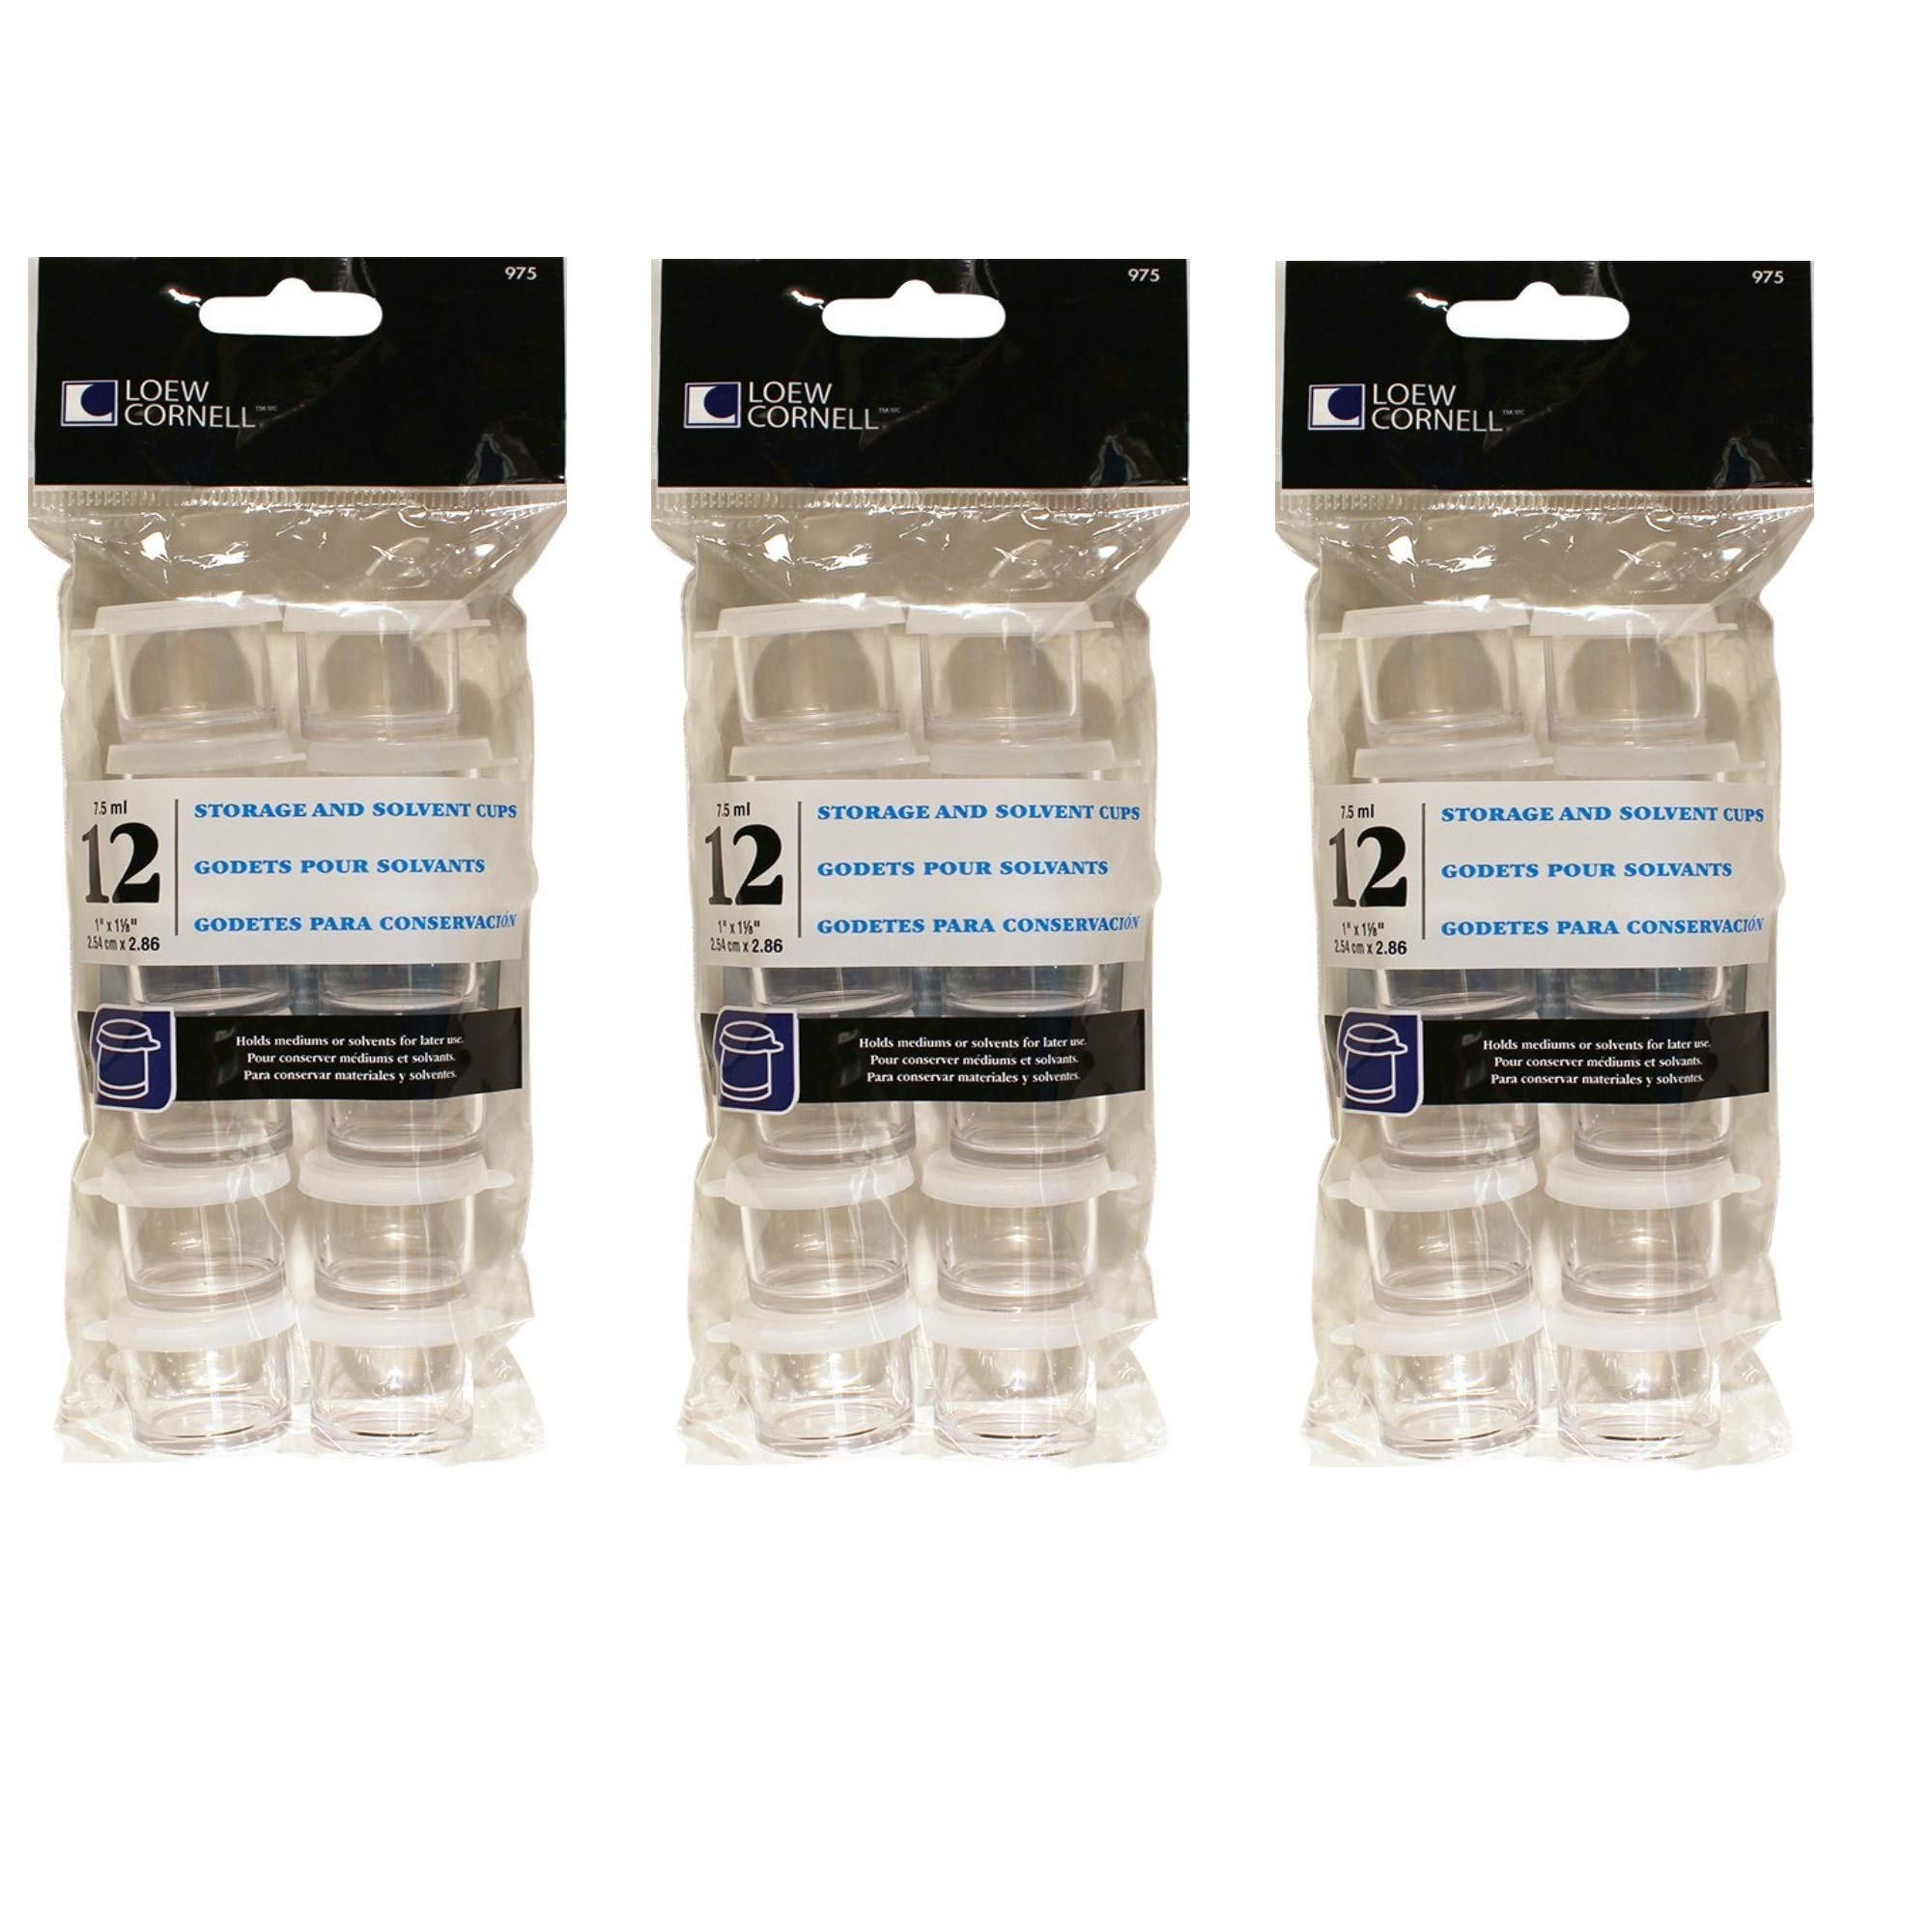 Loew-Cornell 975, 1 Inch Storage Cups, 12 Count, 3 Pack by Loew-Cornell